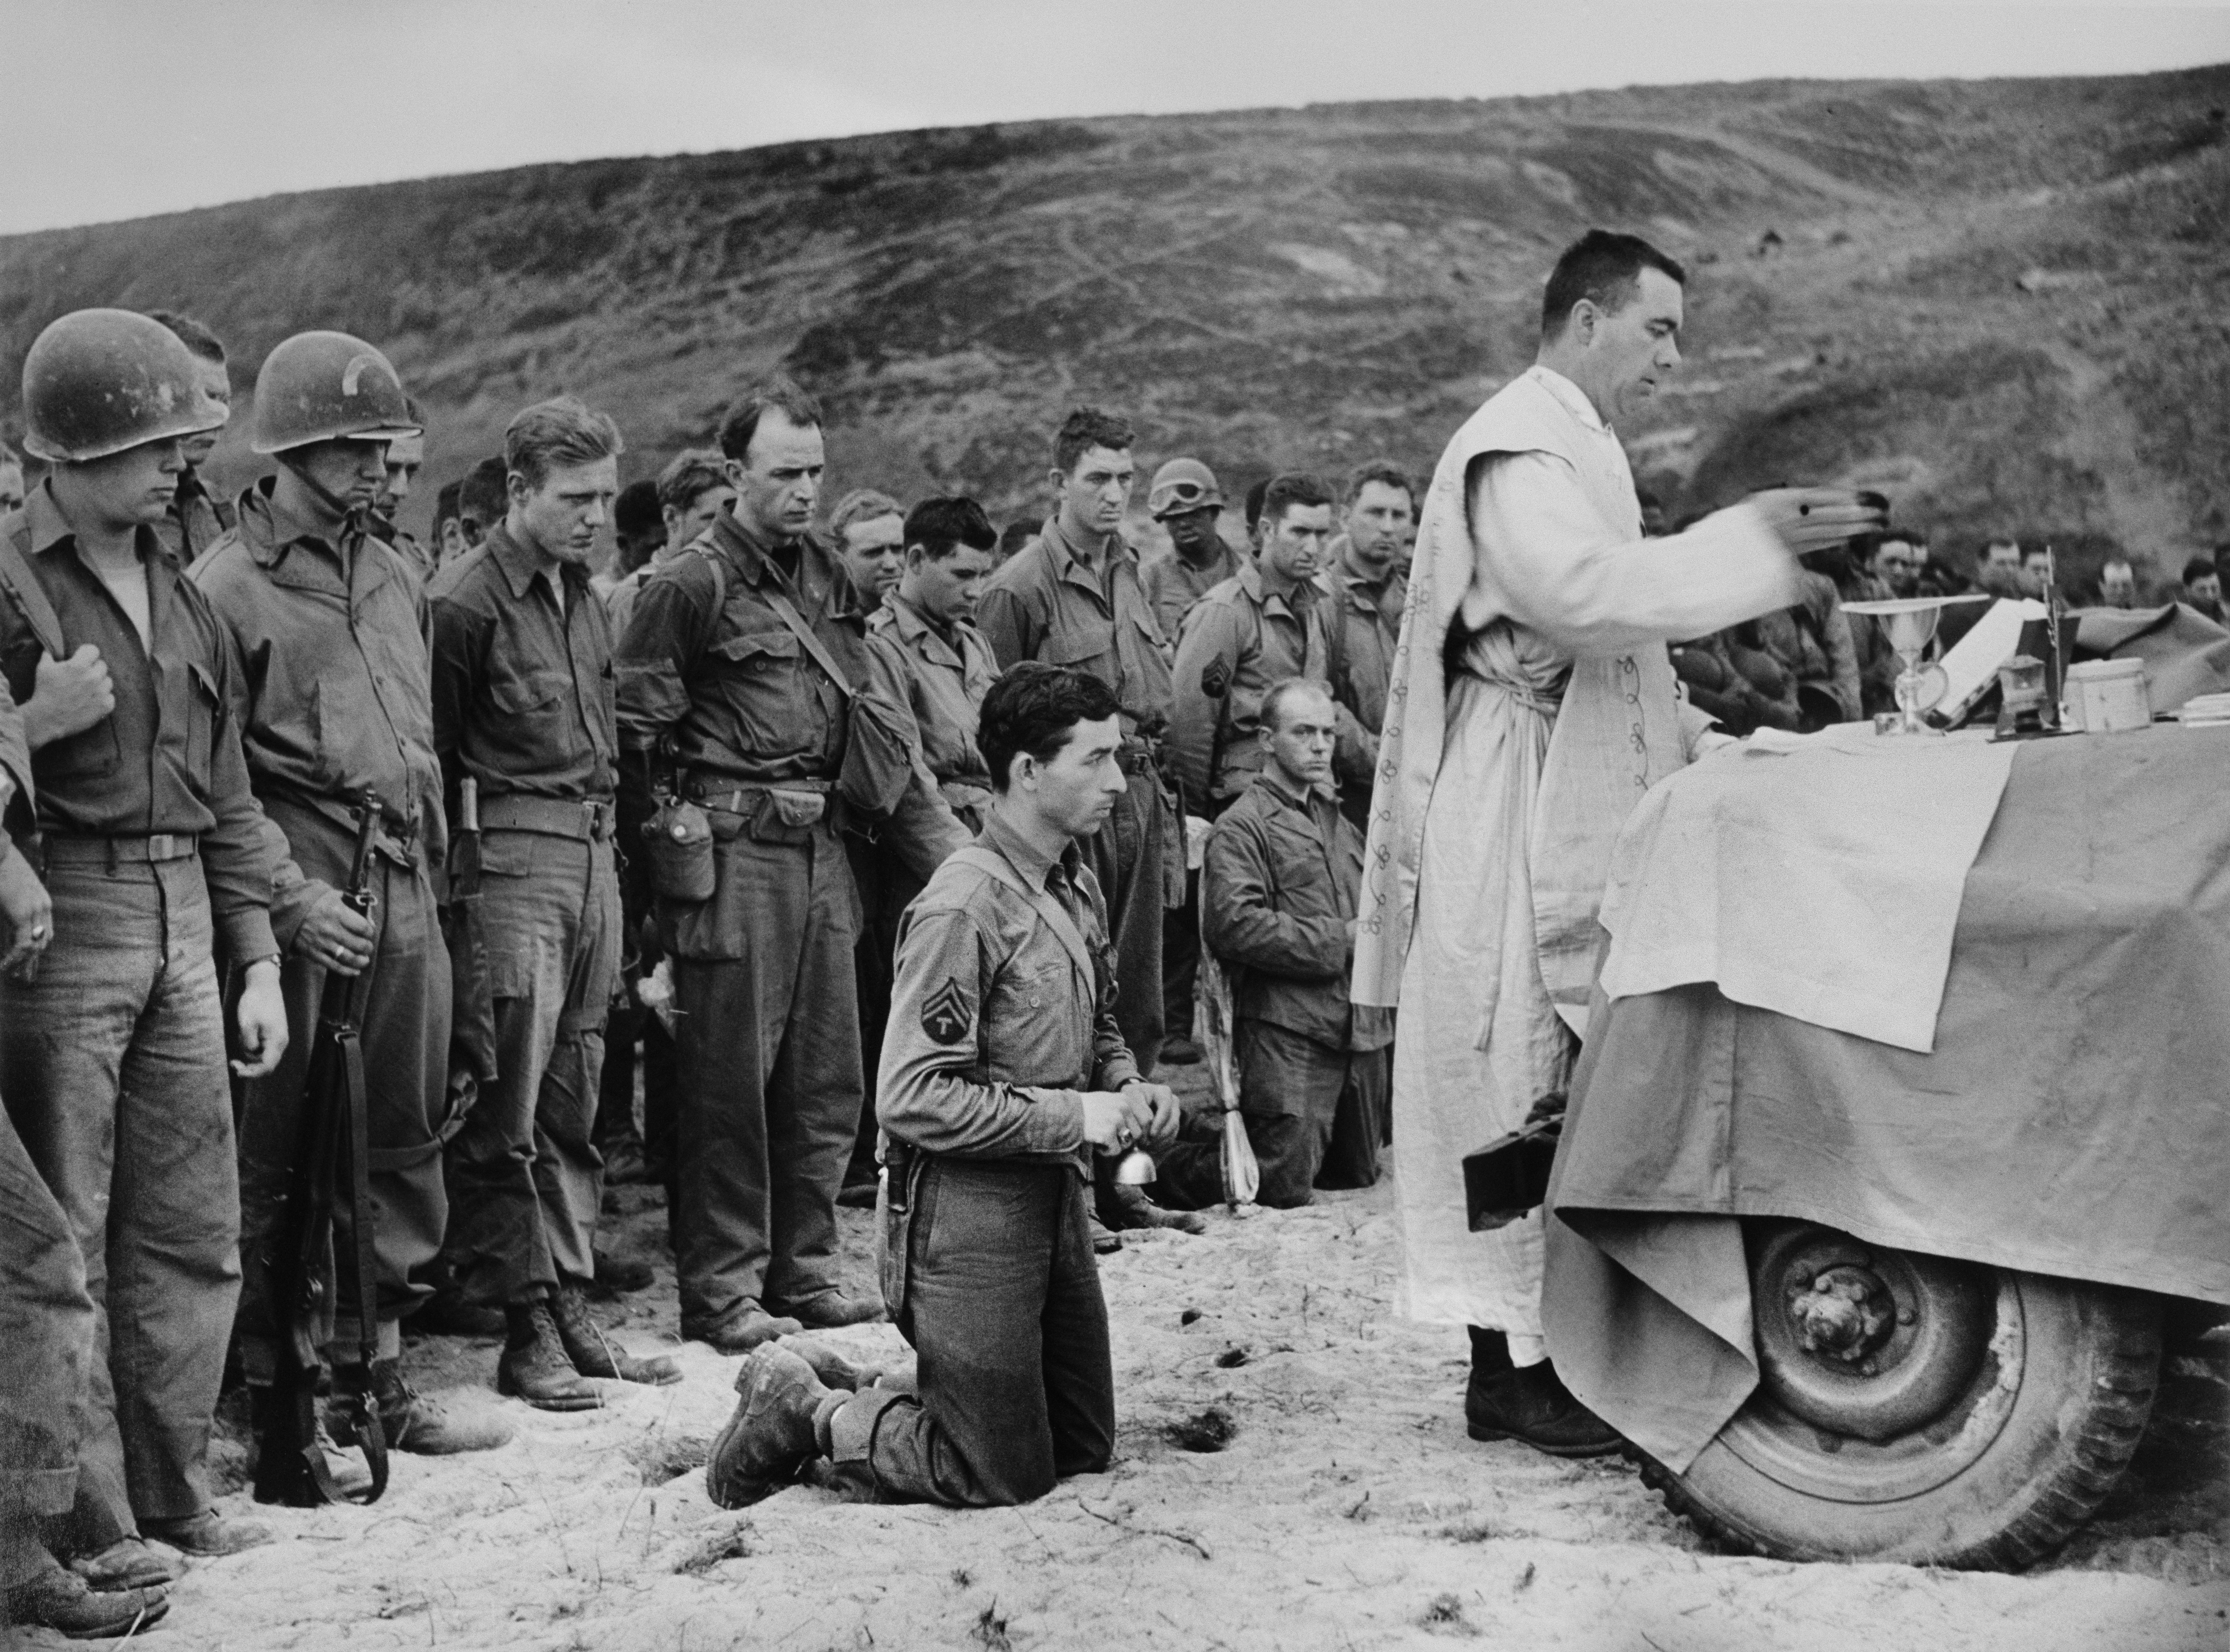 [Using the hood of a jeep as an altar, a Roman Catholic chaplain saying mass at the inauguration of an American cemetery, Omaha Beach, Normandy], June 1944